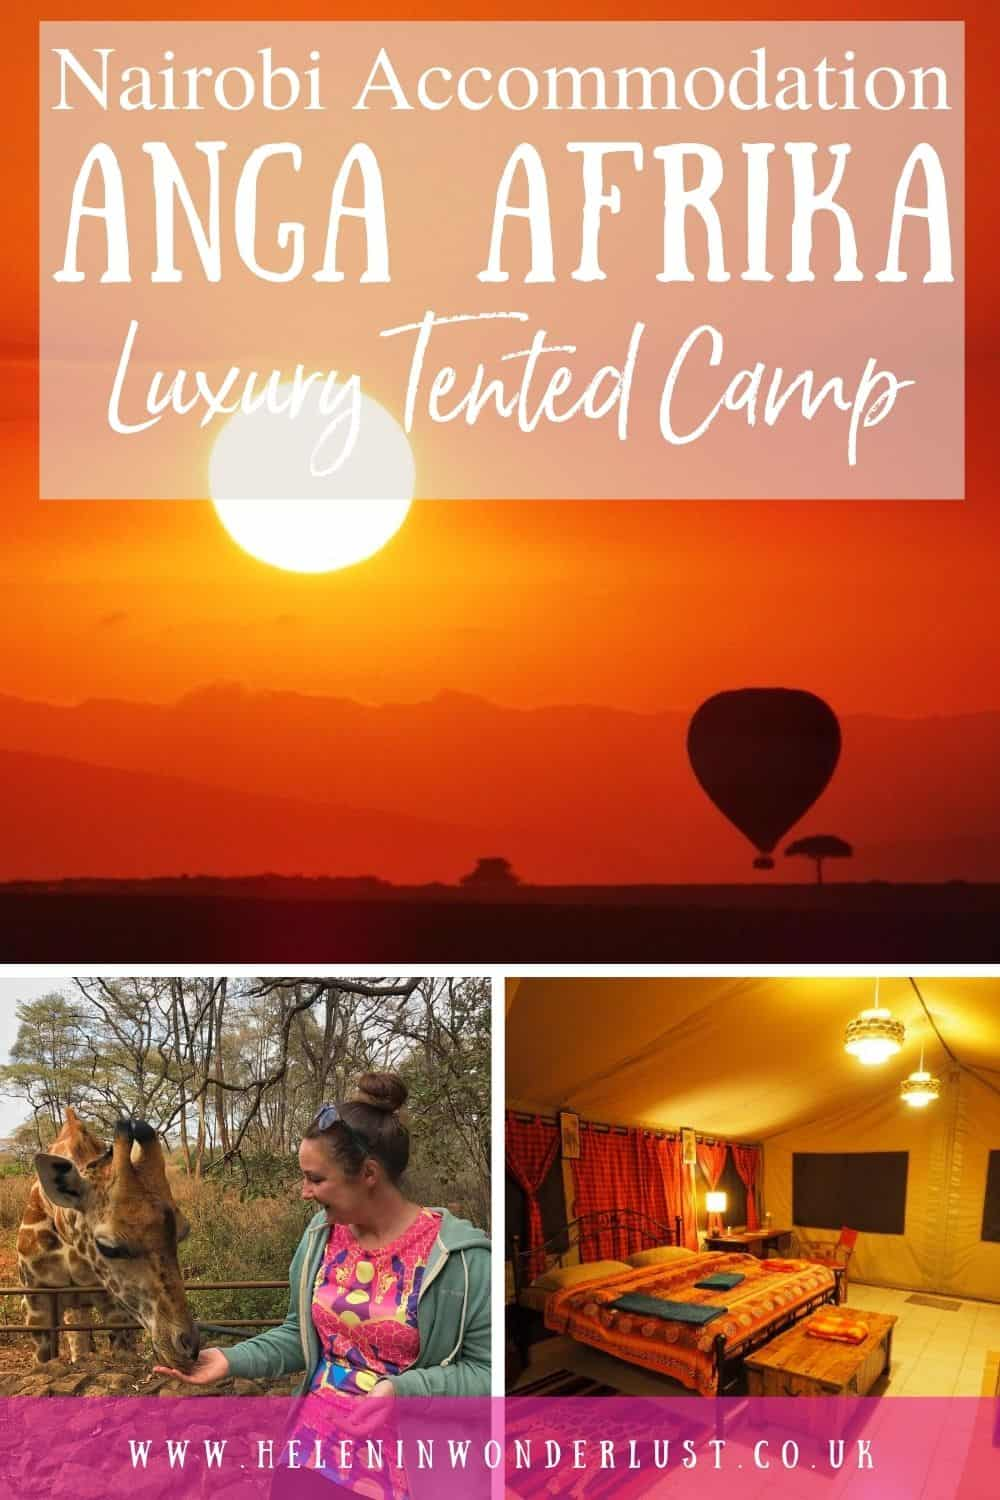 Staying at Anga Afrika Luxury Tented Camp in Nairobi